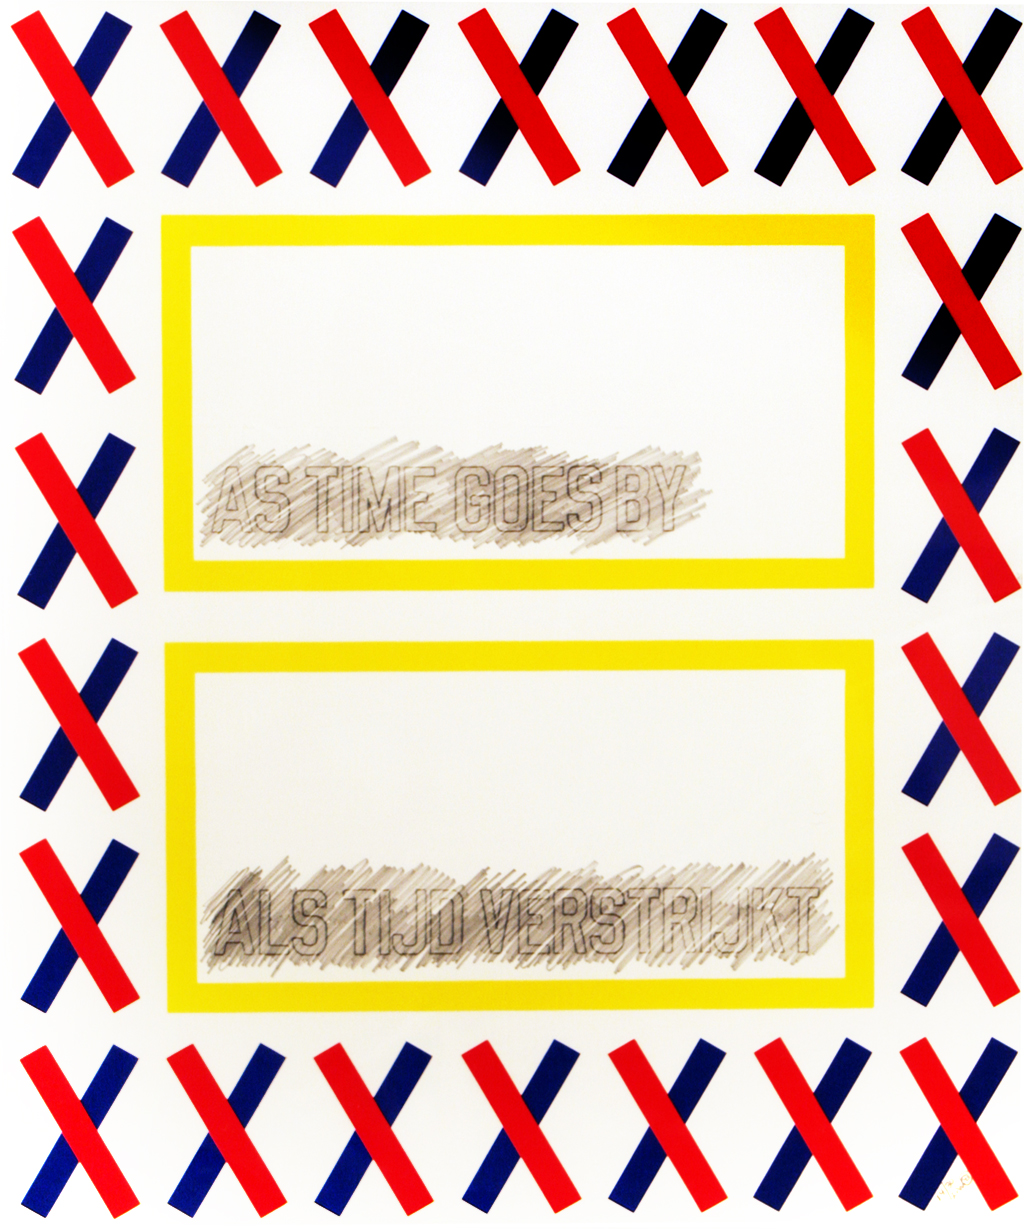 """Lawrence Weiner, As Time Goes By, 14/30, 1993, Screenprint with invisible ink and pencil addition, 22 1/16"""" x 18 1/2"""", published by Vous Etes Ici Editions, Amsterdam"""